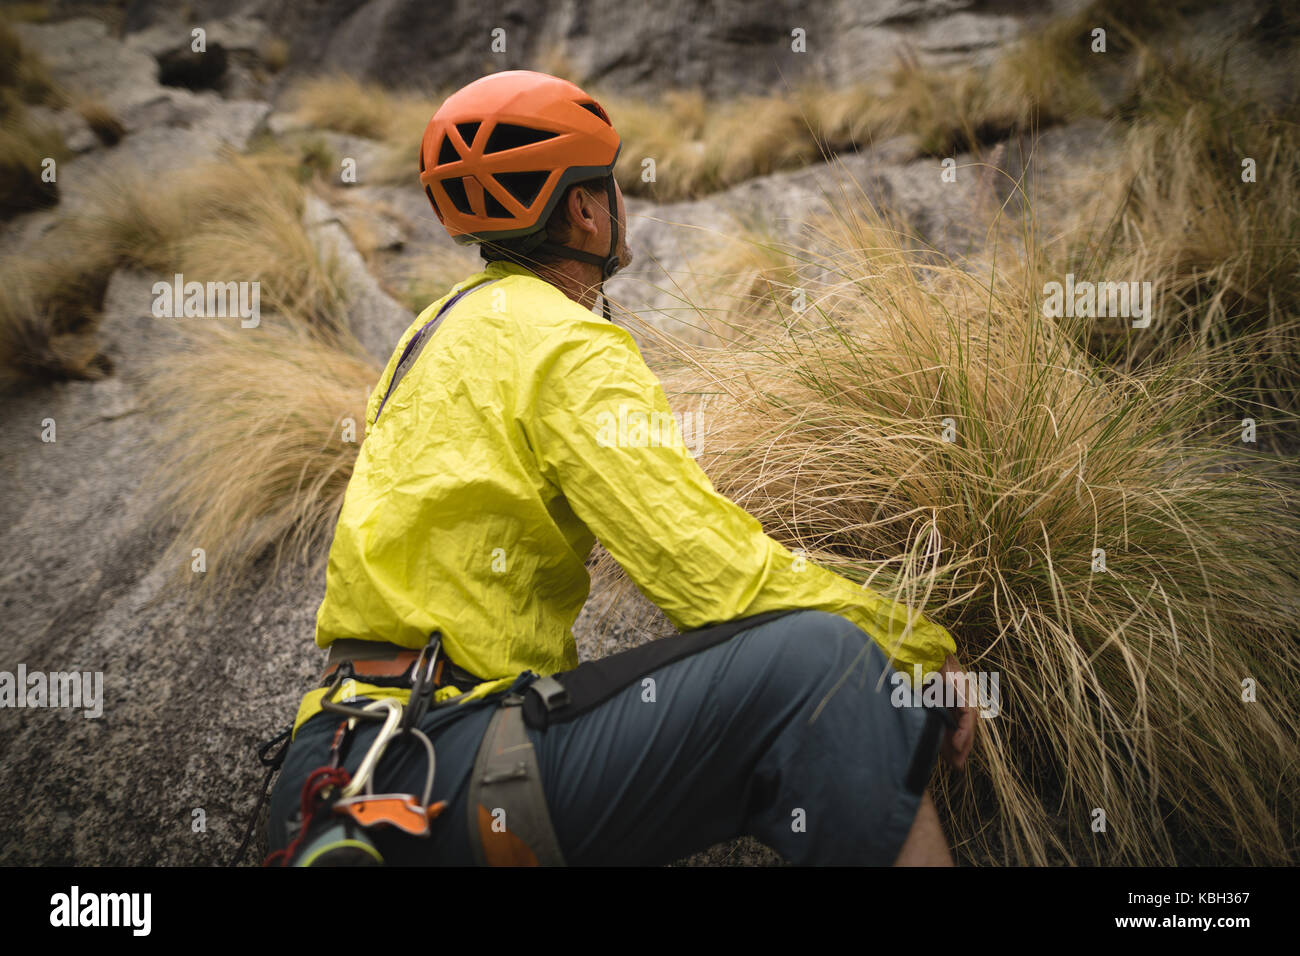 Thoughtful man preparing for mountaineering - Stock Image